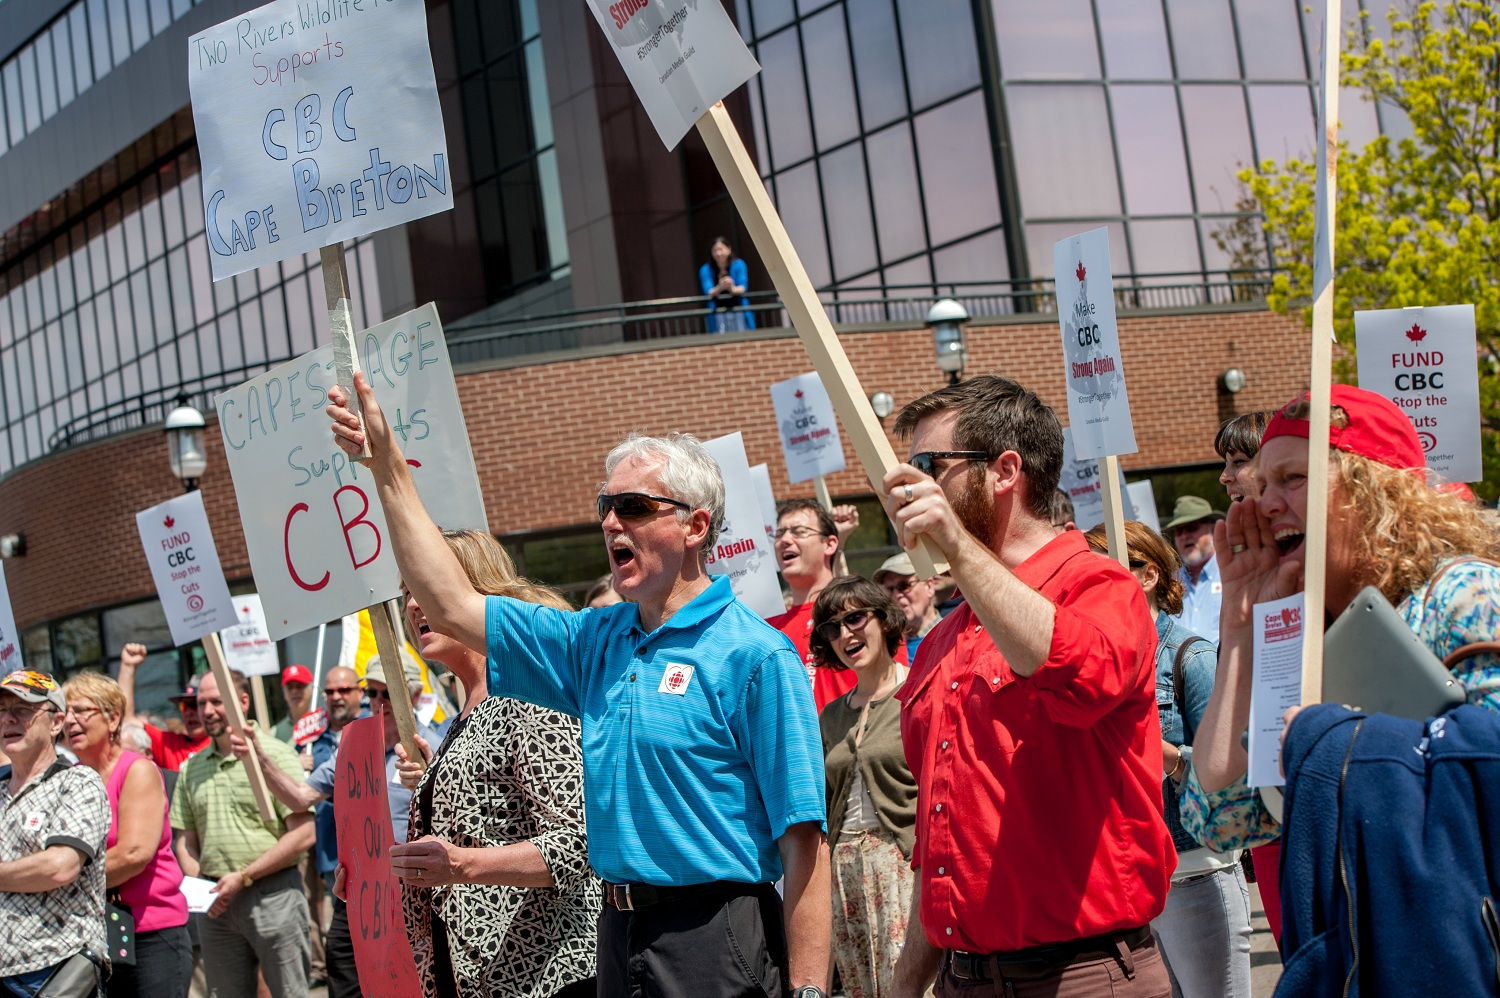 CMG rally for CBC, Cape Breton, June 2014, photo credit: http://www.coreykatzphotography.com/